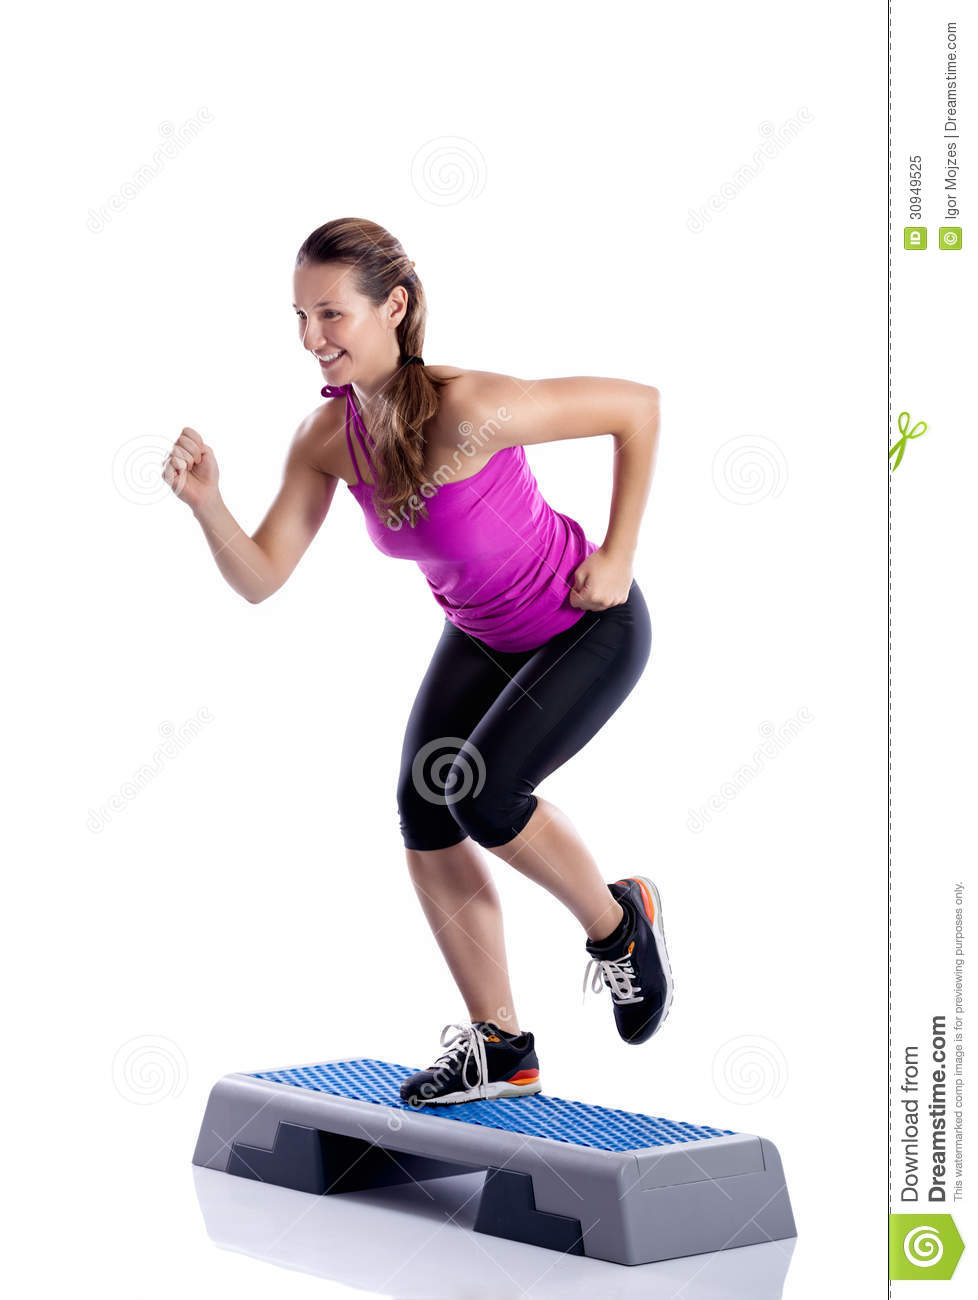 Step Workout: Woman Doing Step Exercise Stock Image. Image Of Health